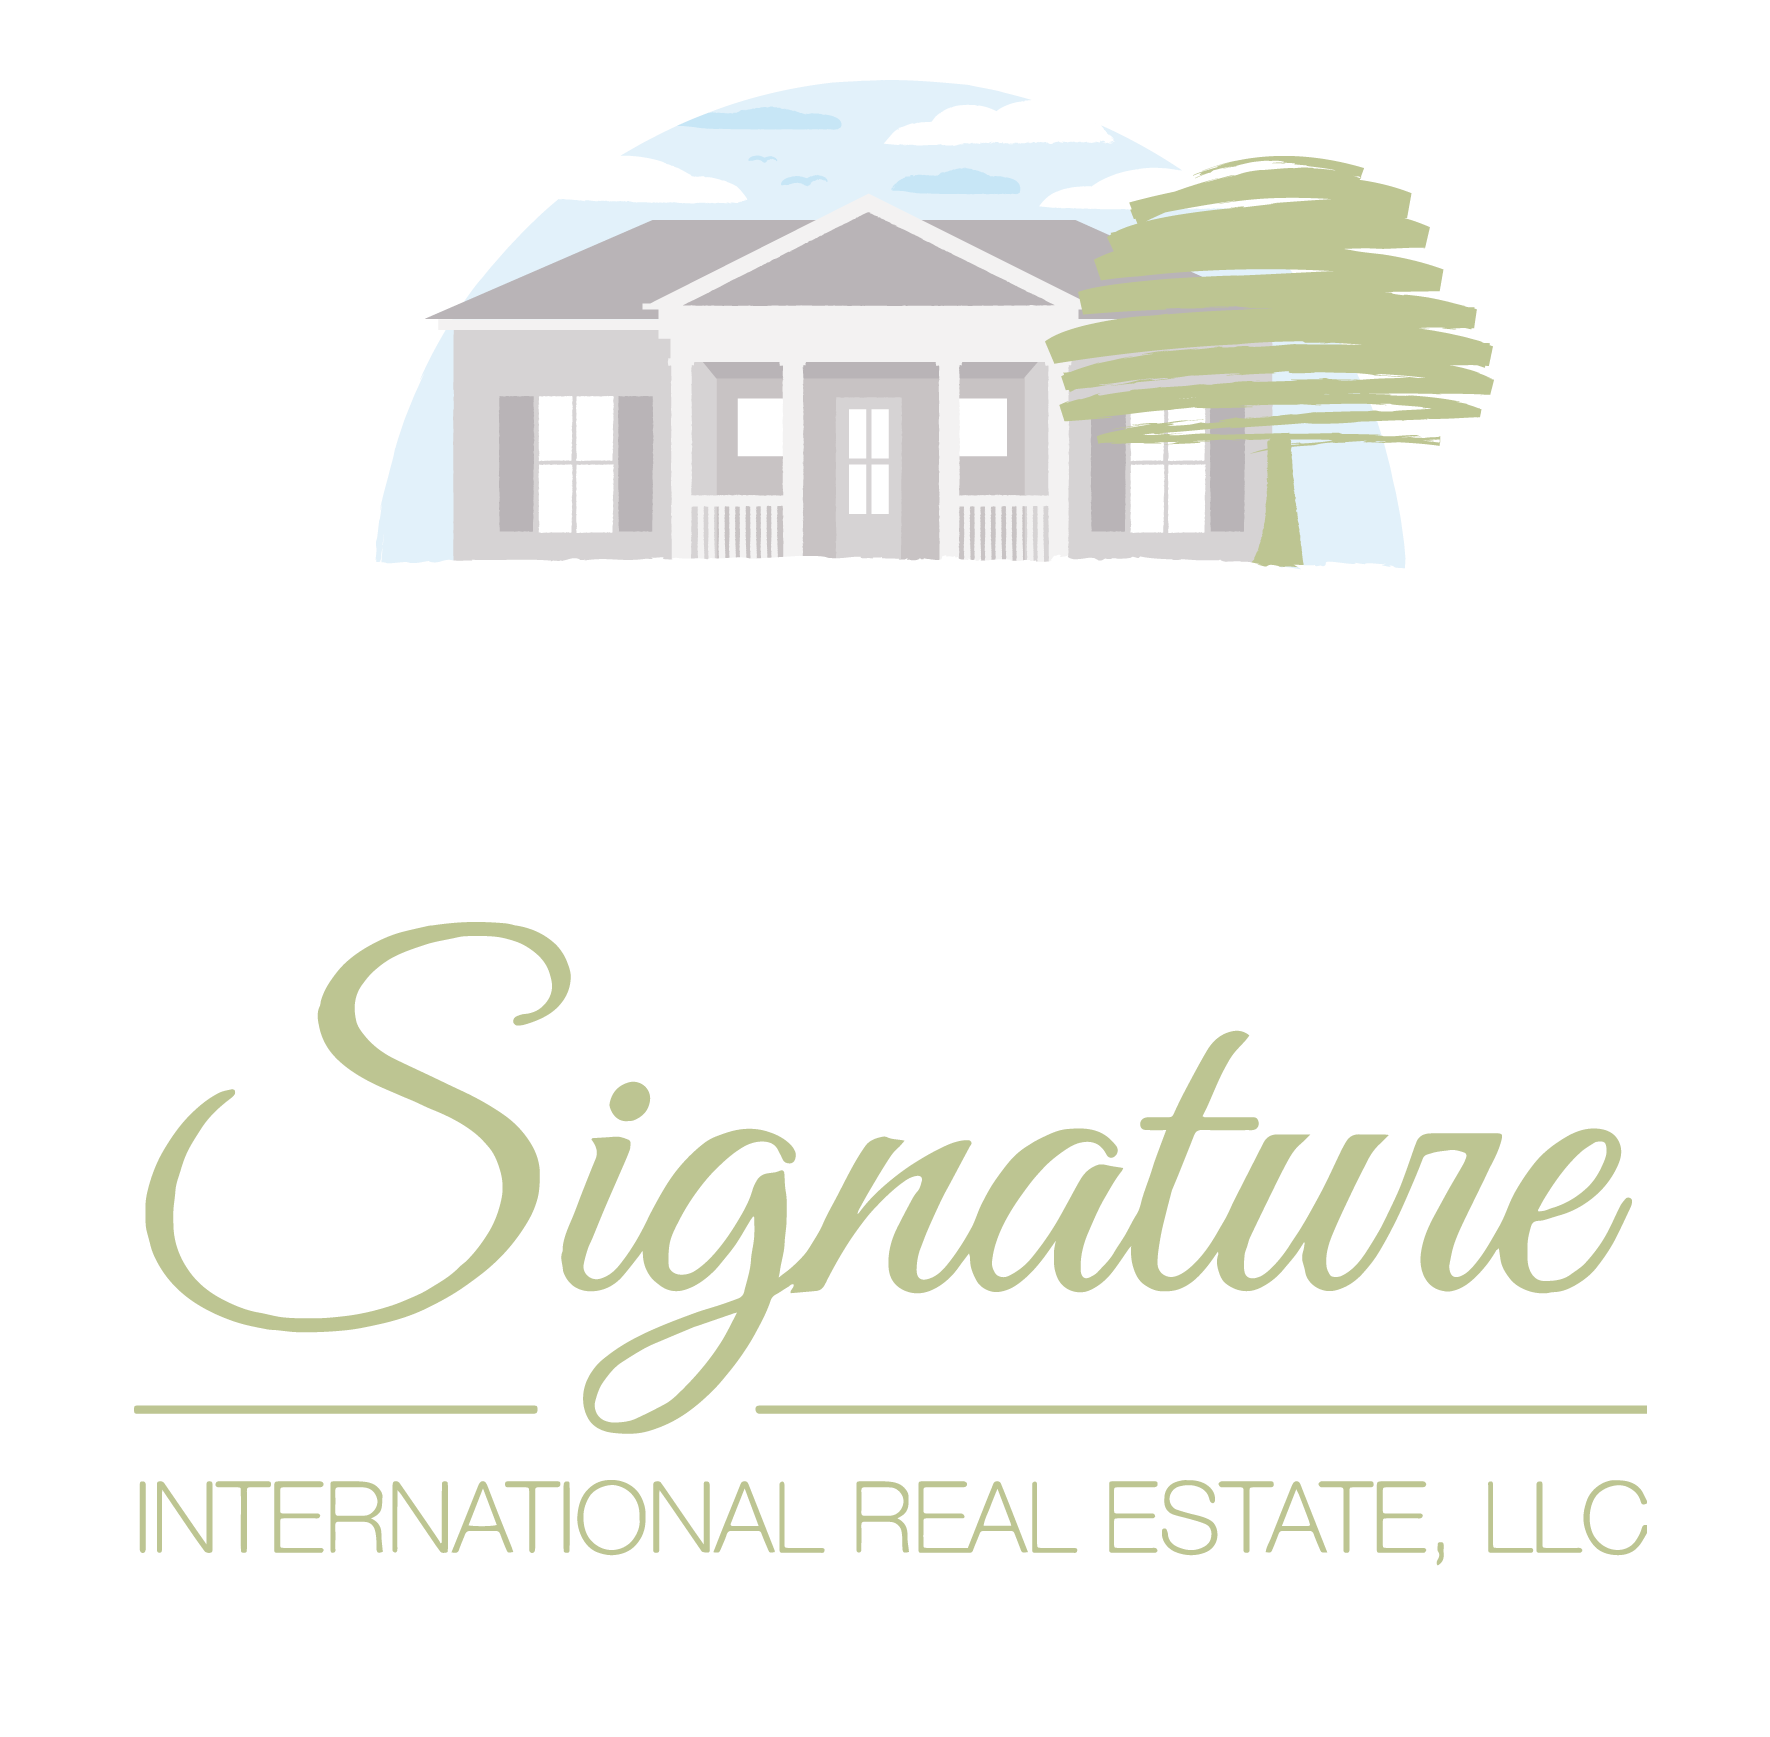 The Messick Group